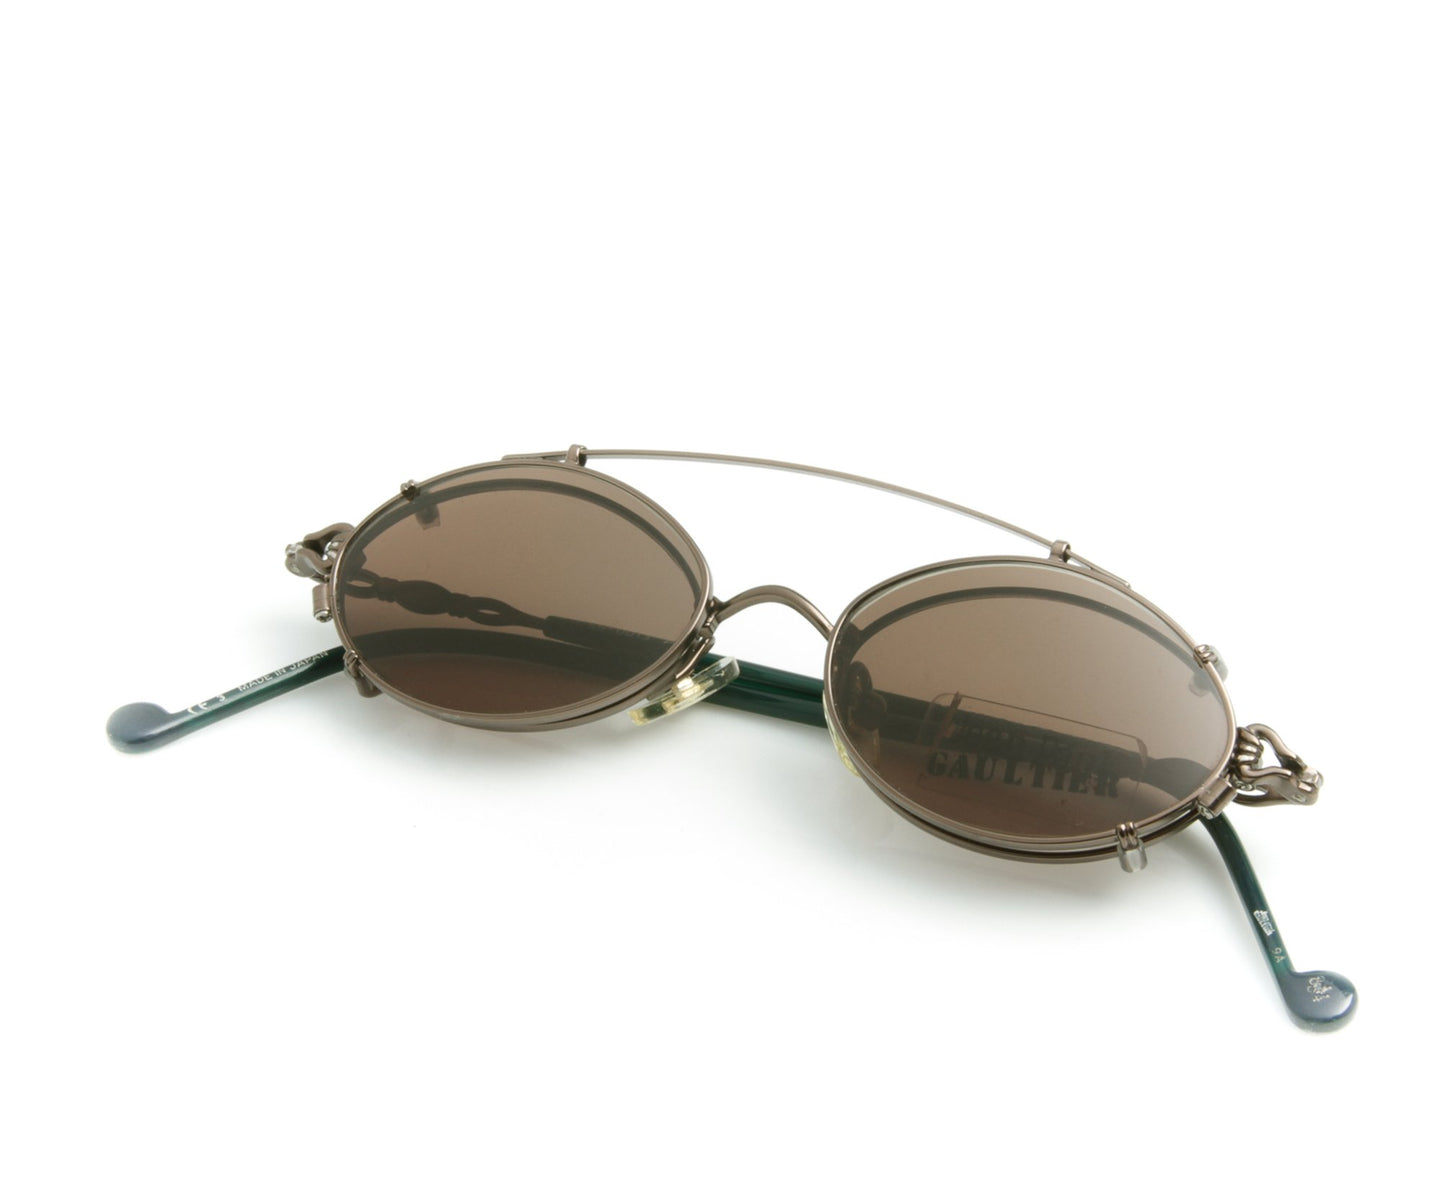 Jean Paul Gaultier 55-0013 3, Jean Paul Gaultier , glasses frames, eyeglasses online, eyeglass frames, mens glasses, womens glasses, buy glasses online, designer eyeglasses, vintage sunglasses, retro sunglasses, vintage glasses, sunglass, eyeglass, glasses, lens, vintage frames company, vf